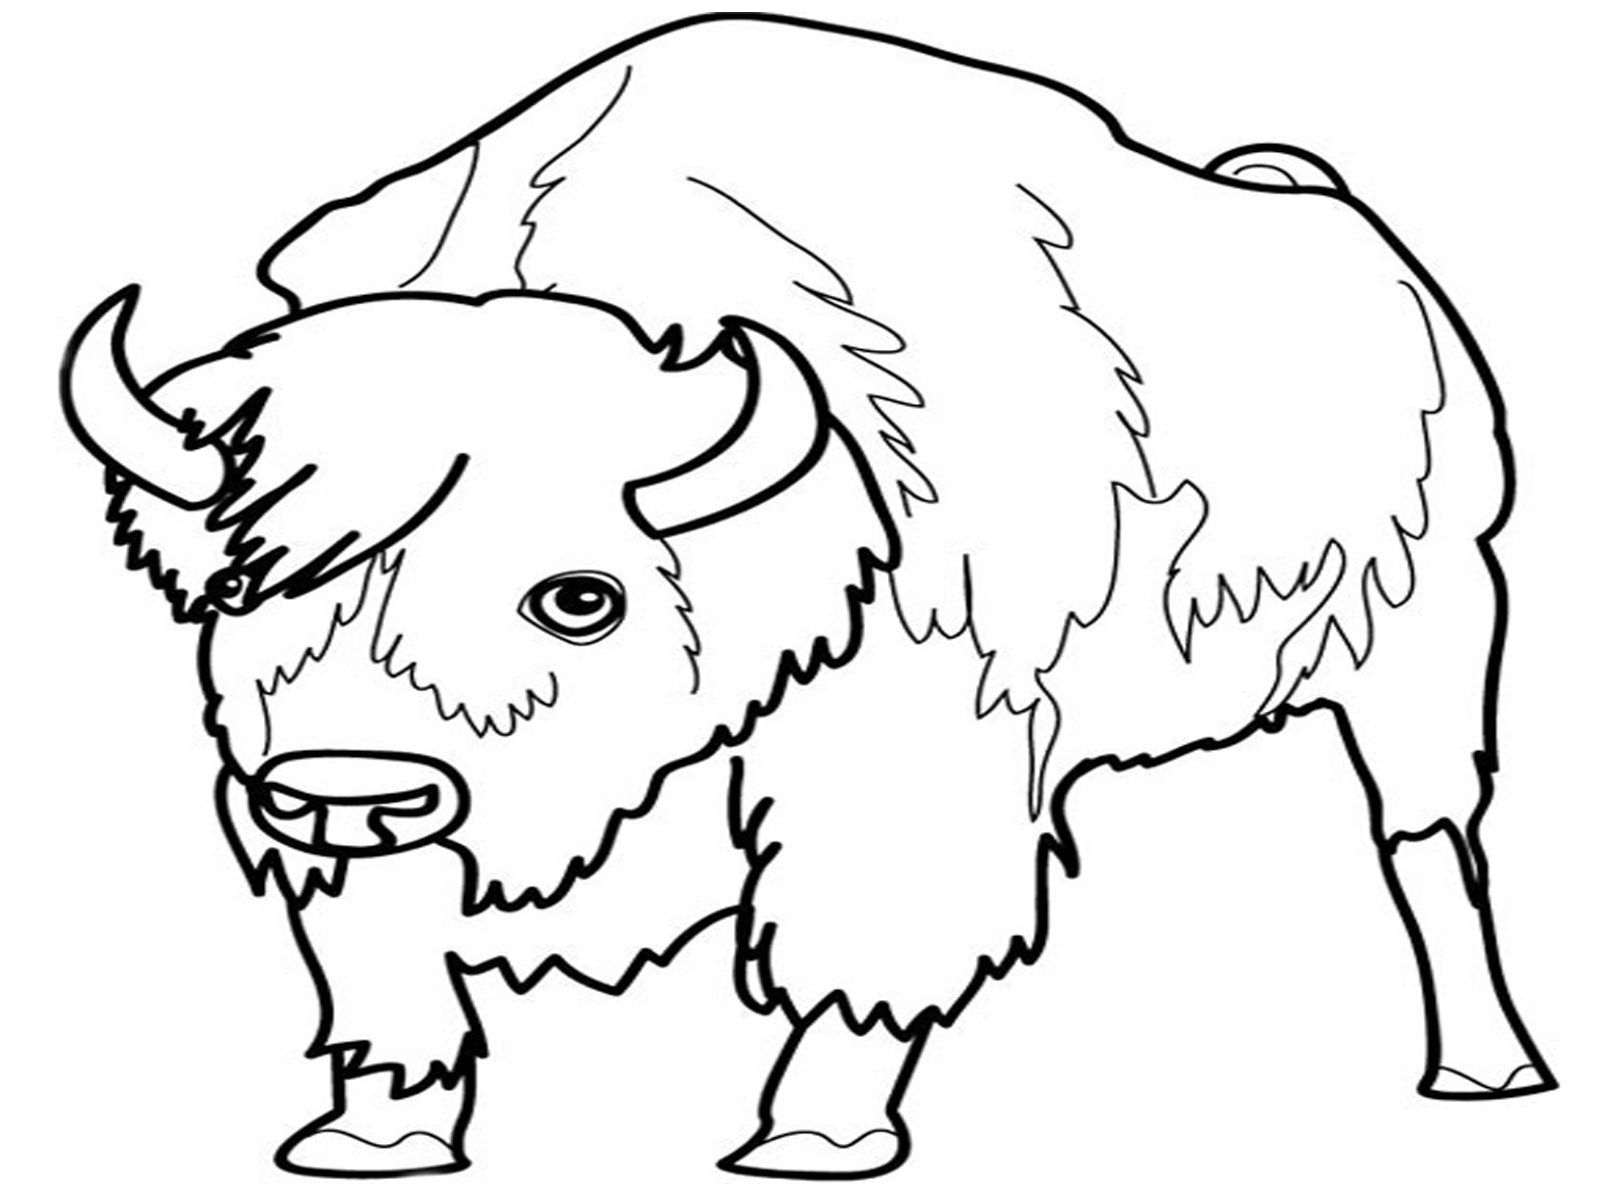 Grassland Animals Coloring Pages